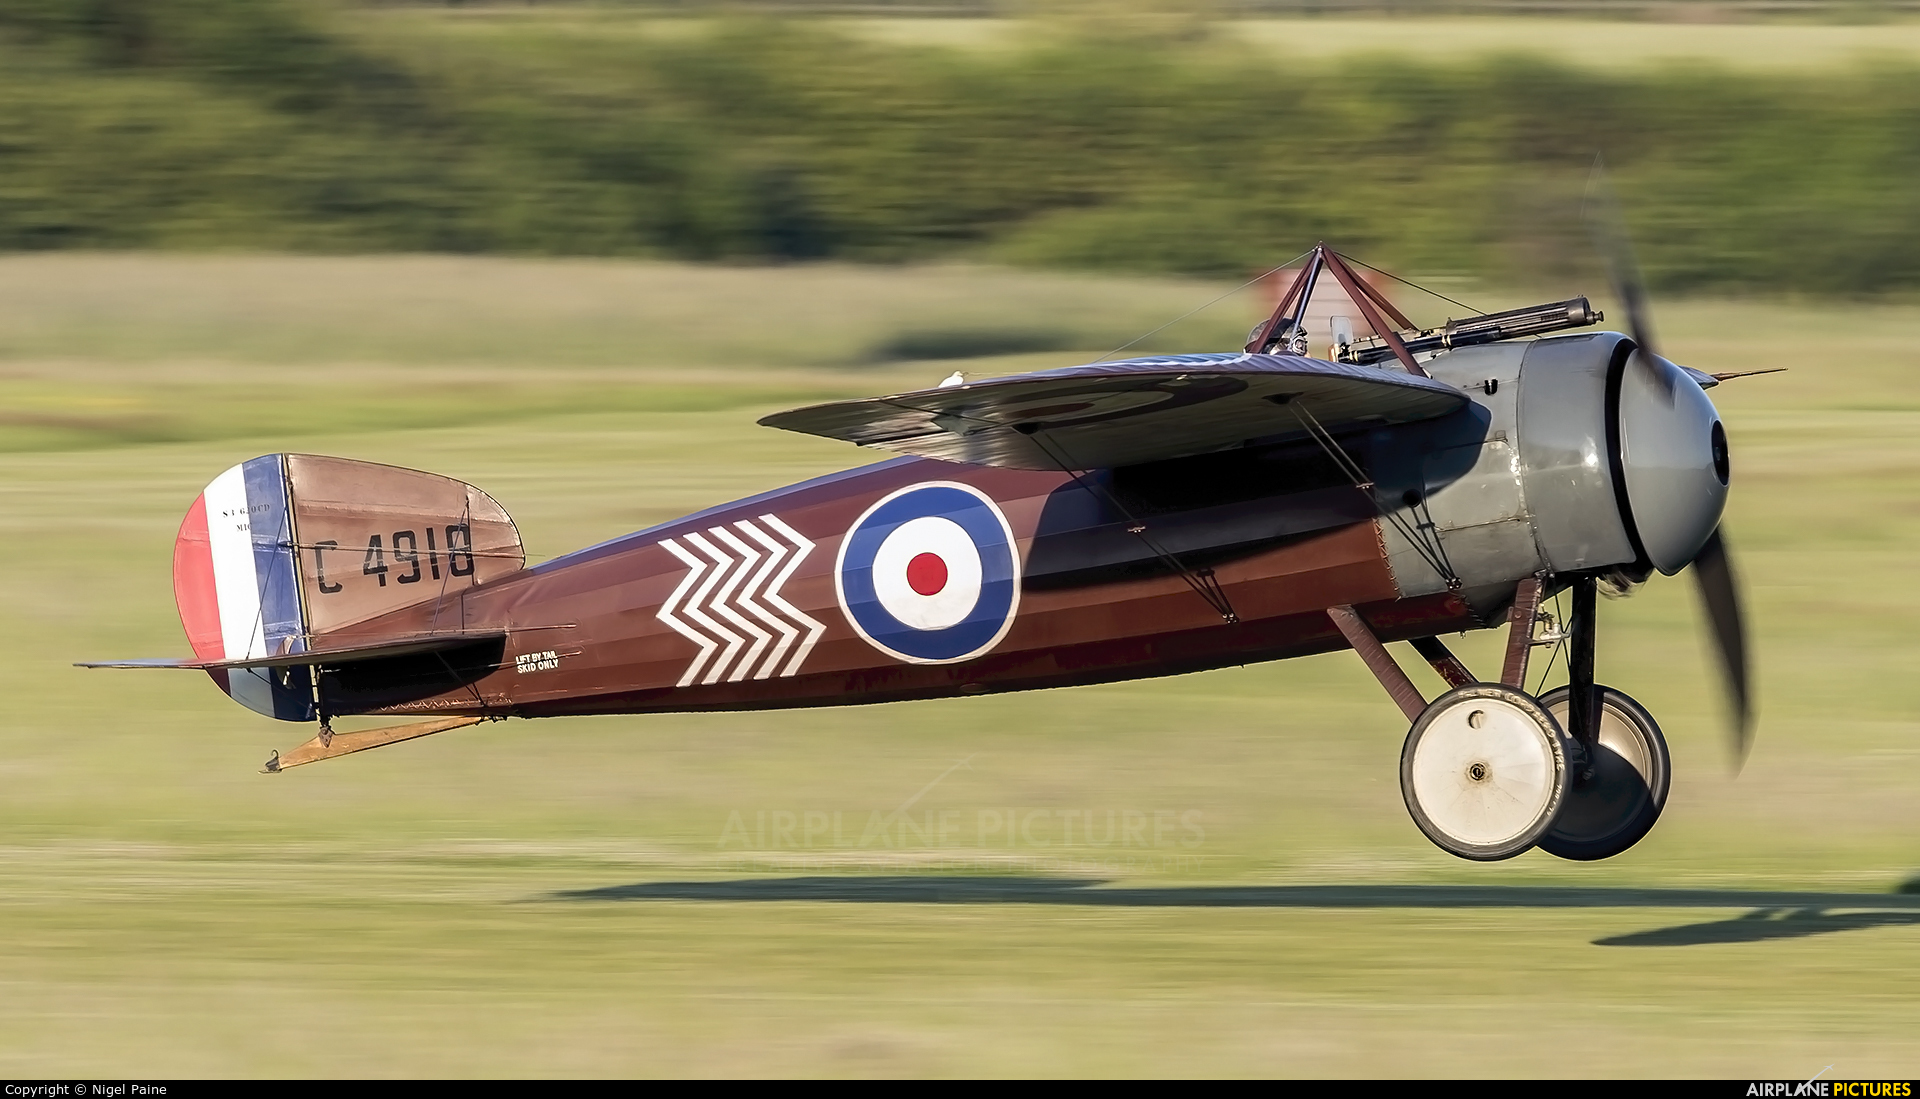 The Shuttleworth Collection G-BWJM aircraft at Old Warden